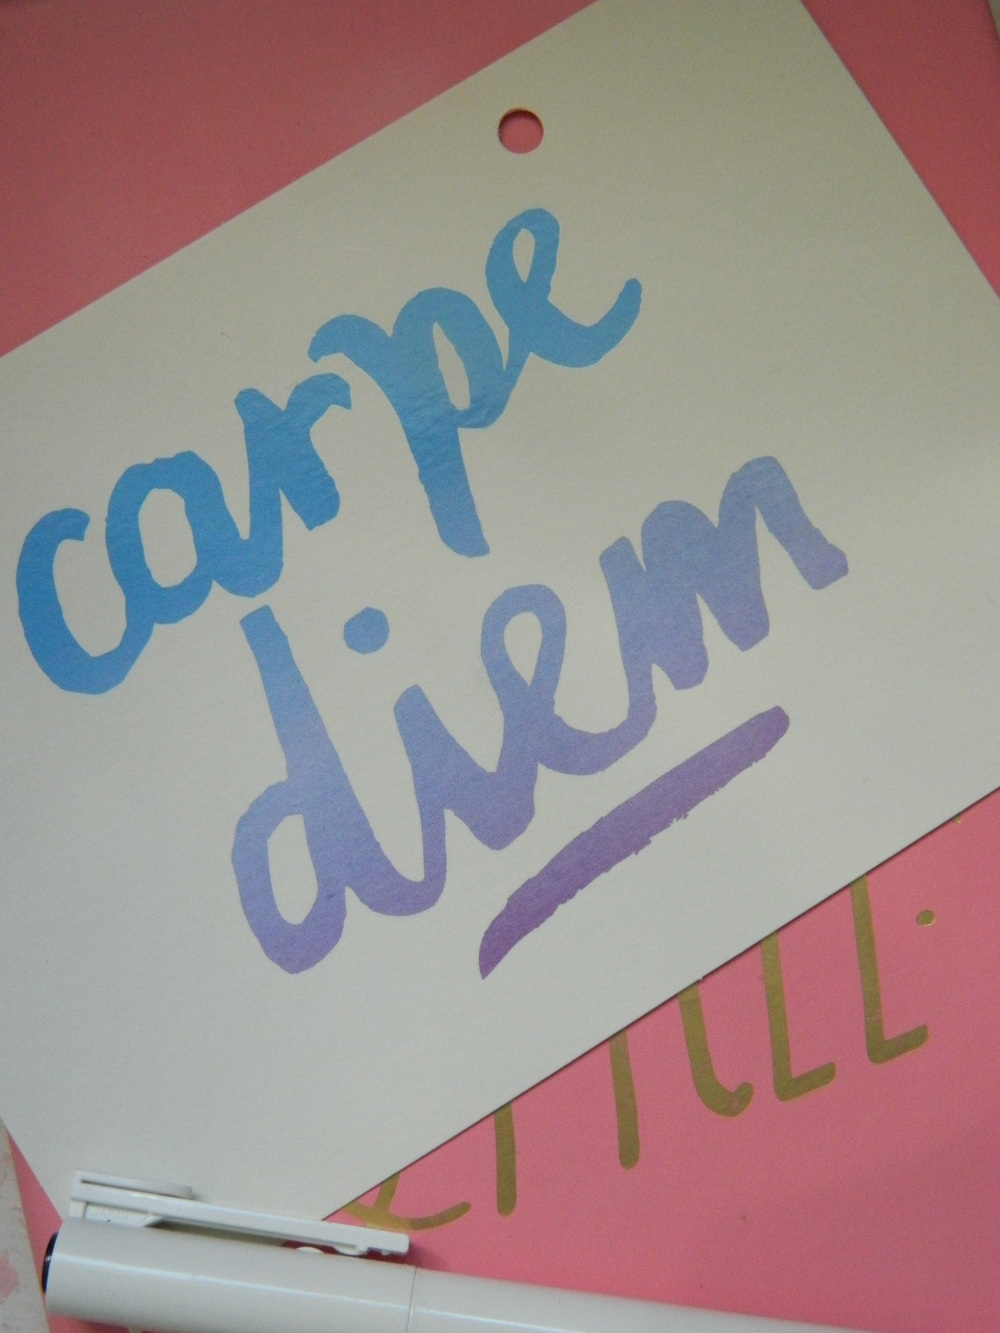 Carpe Diem postcard from Paperchase.